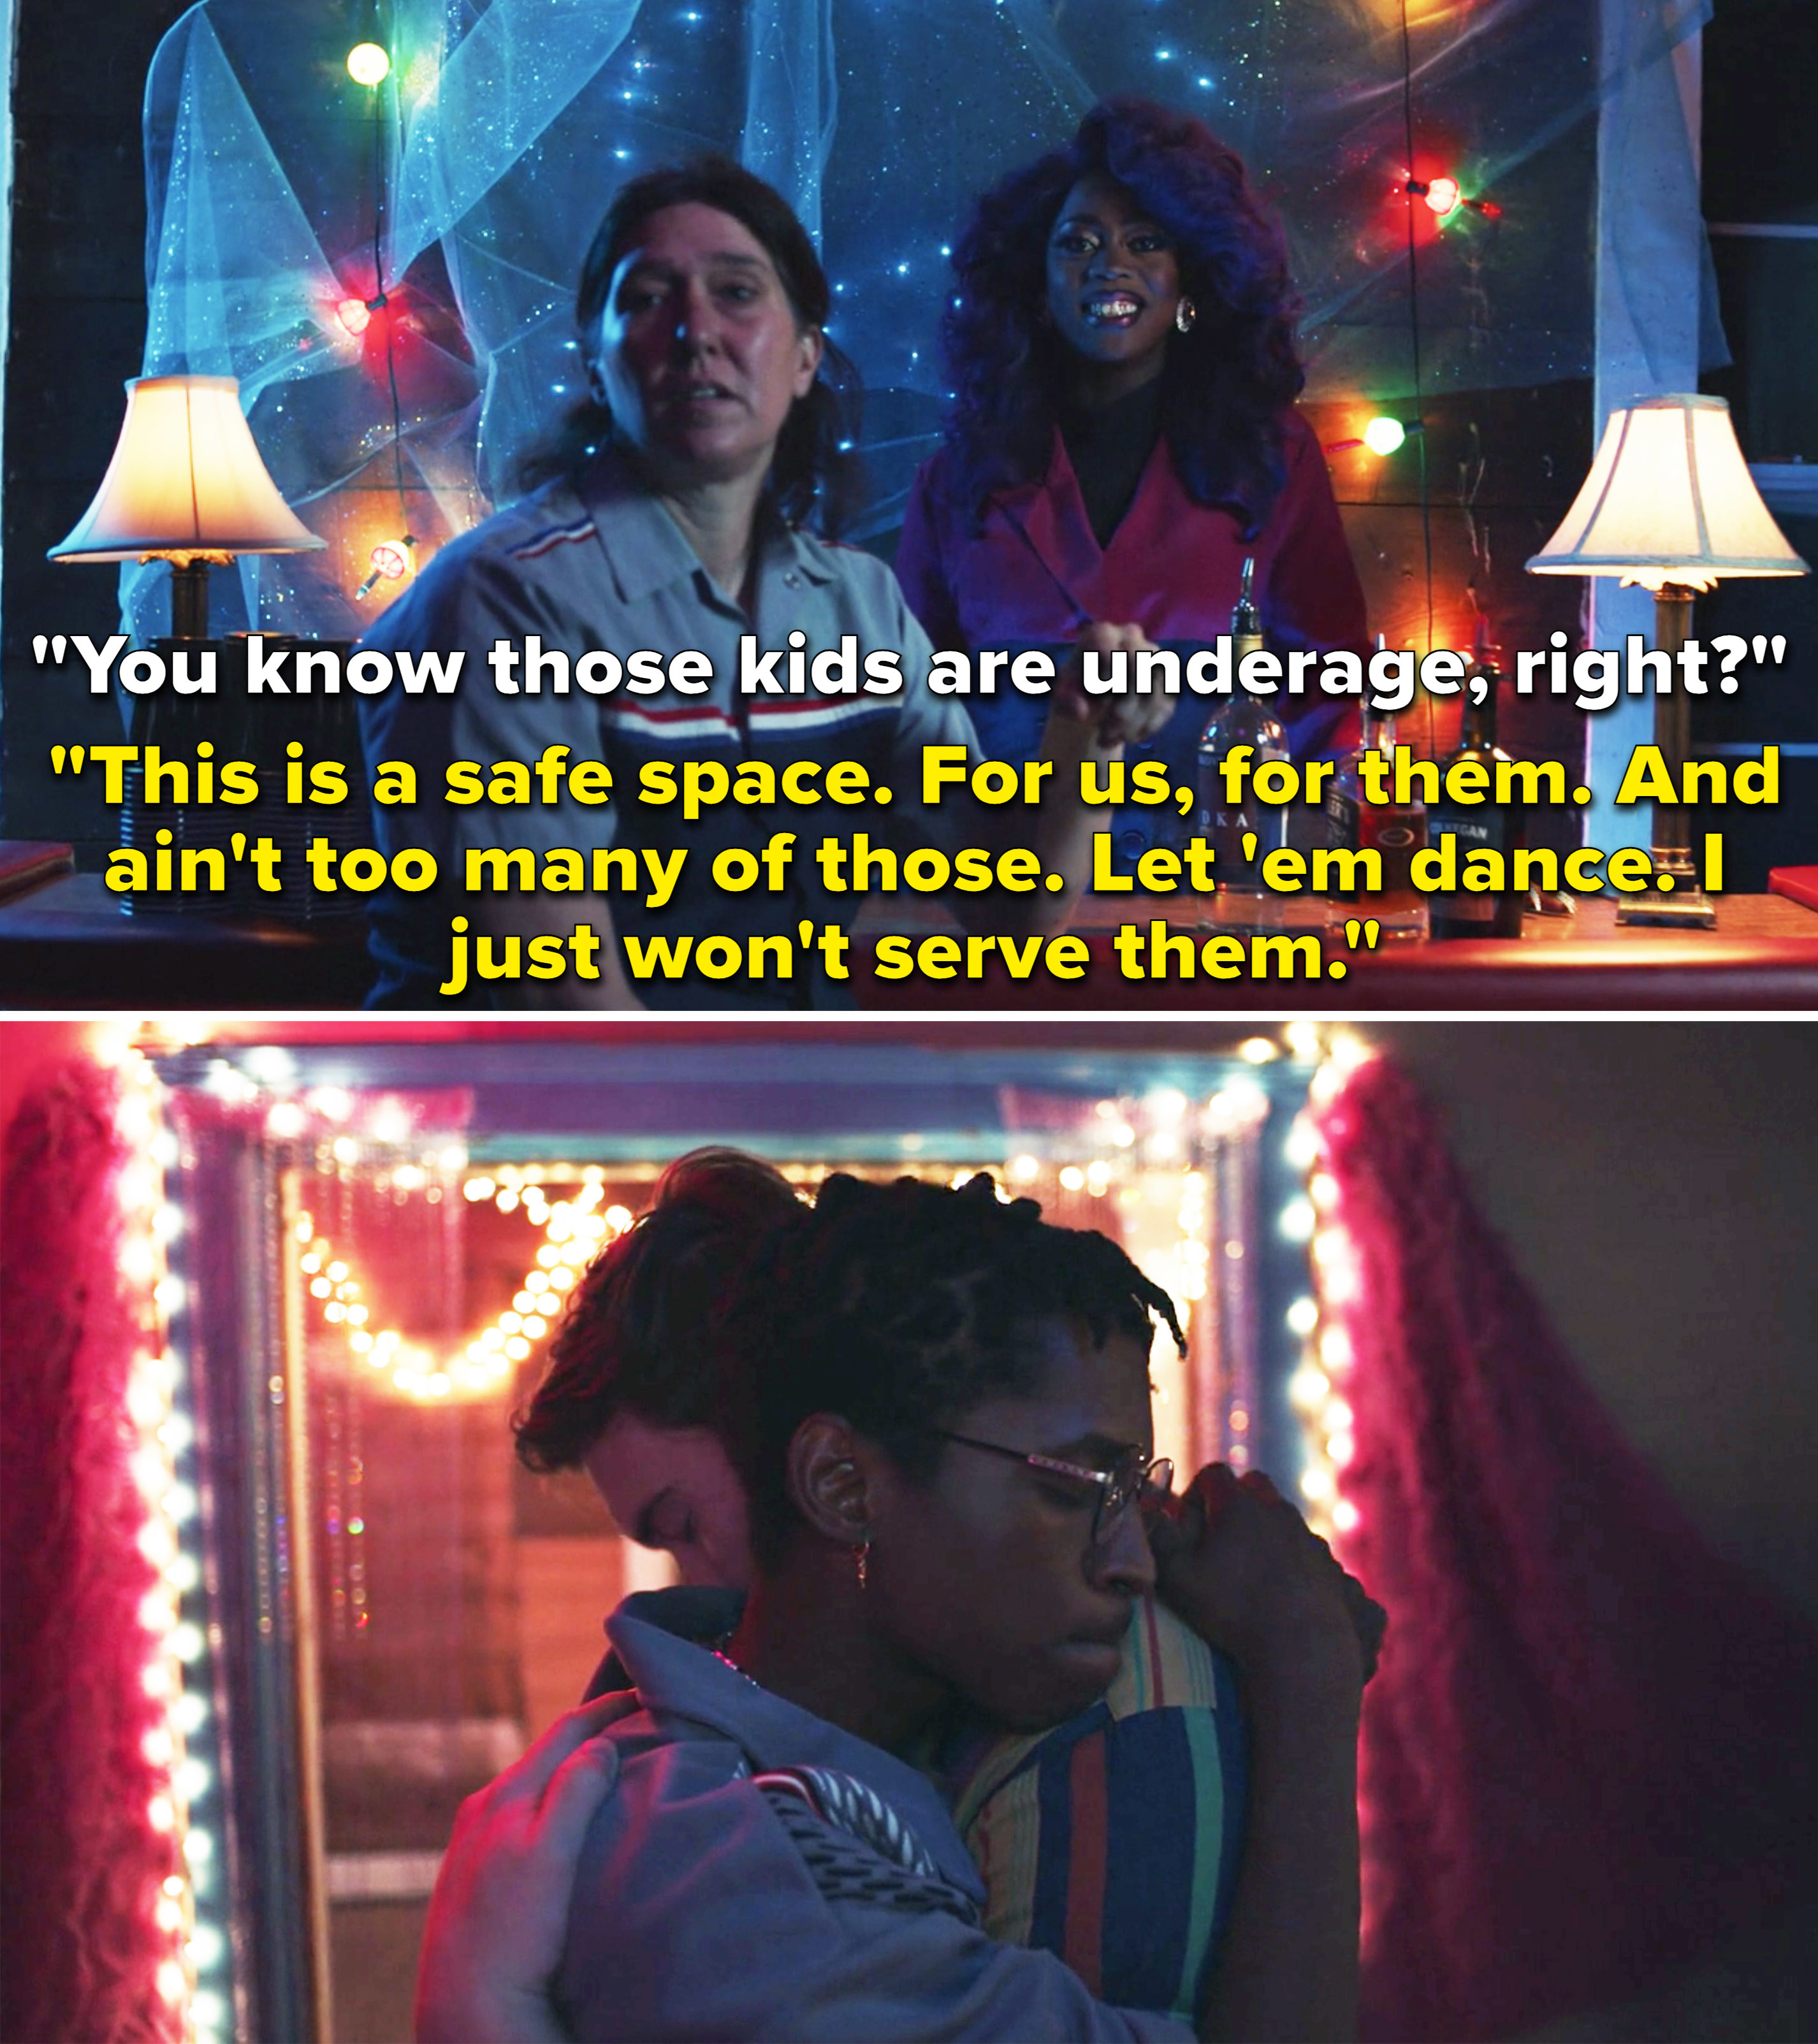 """A bartender watching Ben and Vince dancing and saying, """"This is a safe space. For us, for them. And ain't too many of those. Let 'em dance. I just won't serve them"""""""